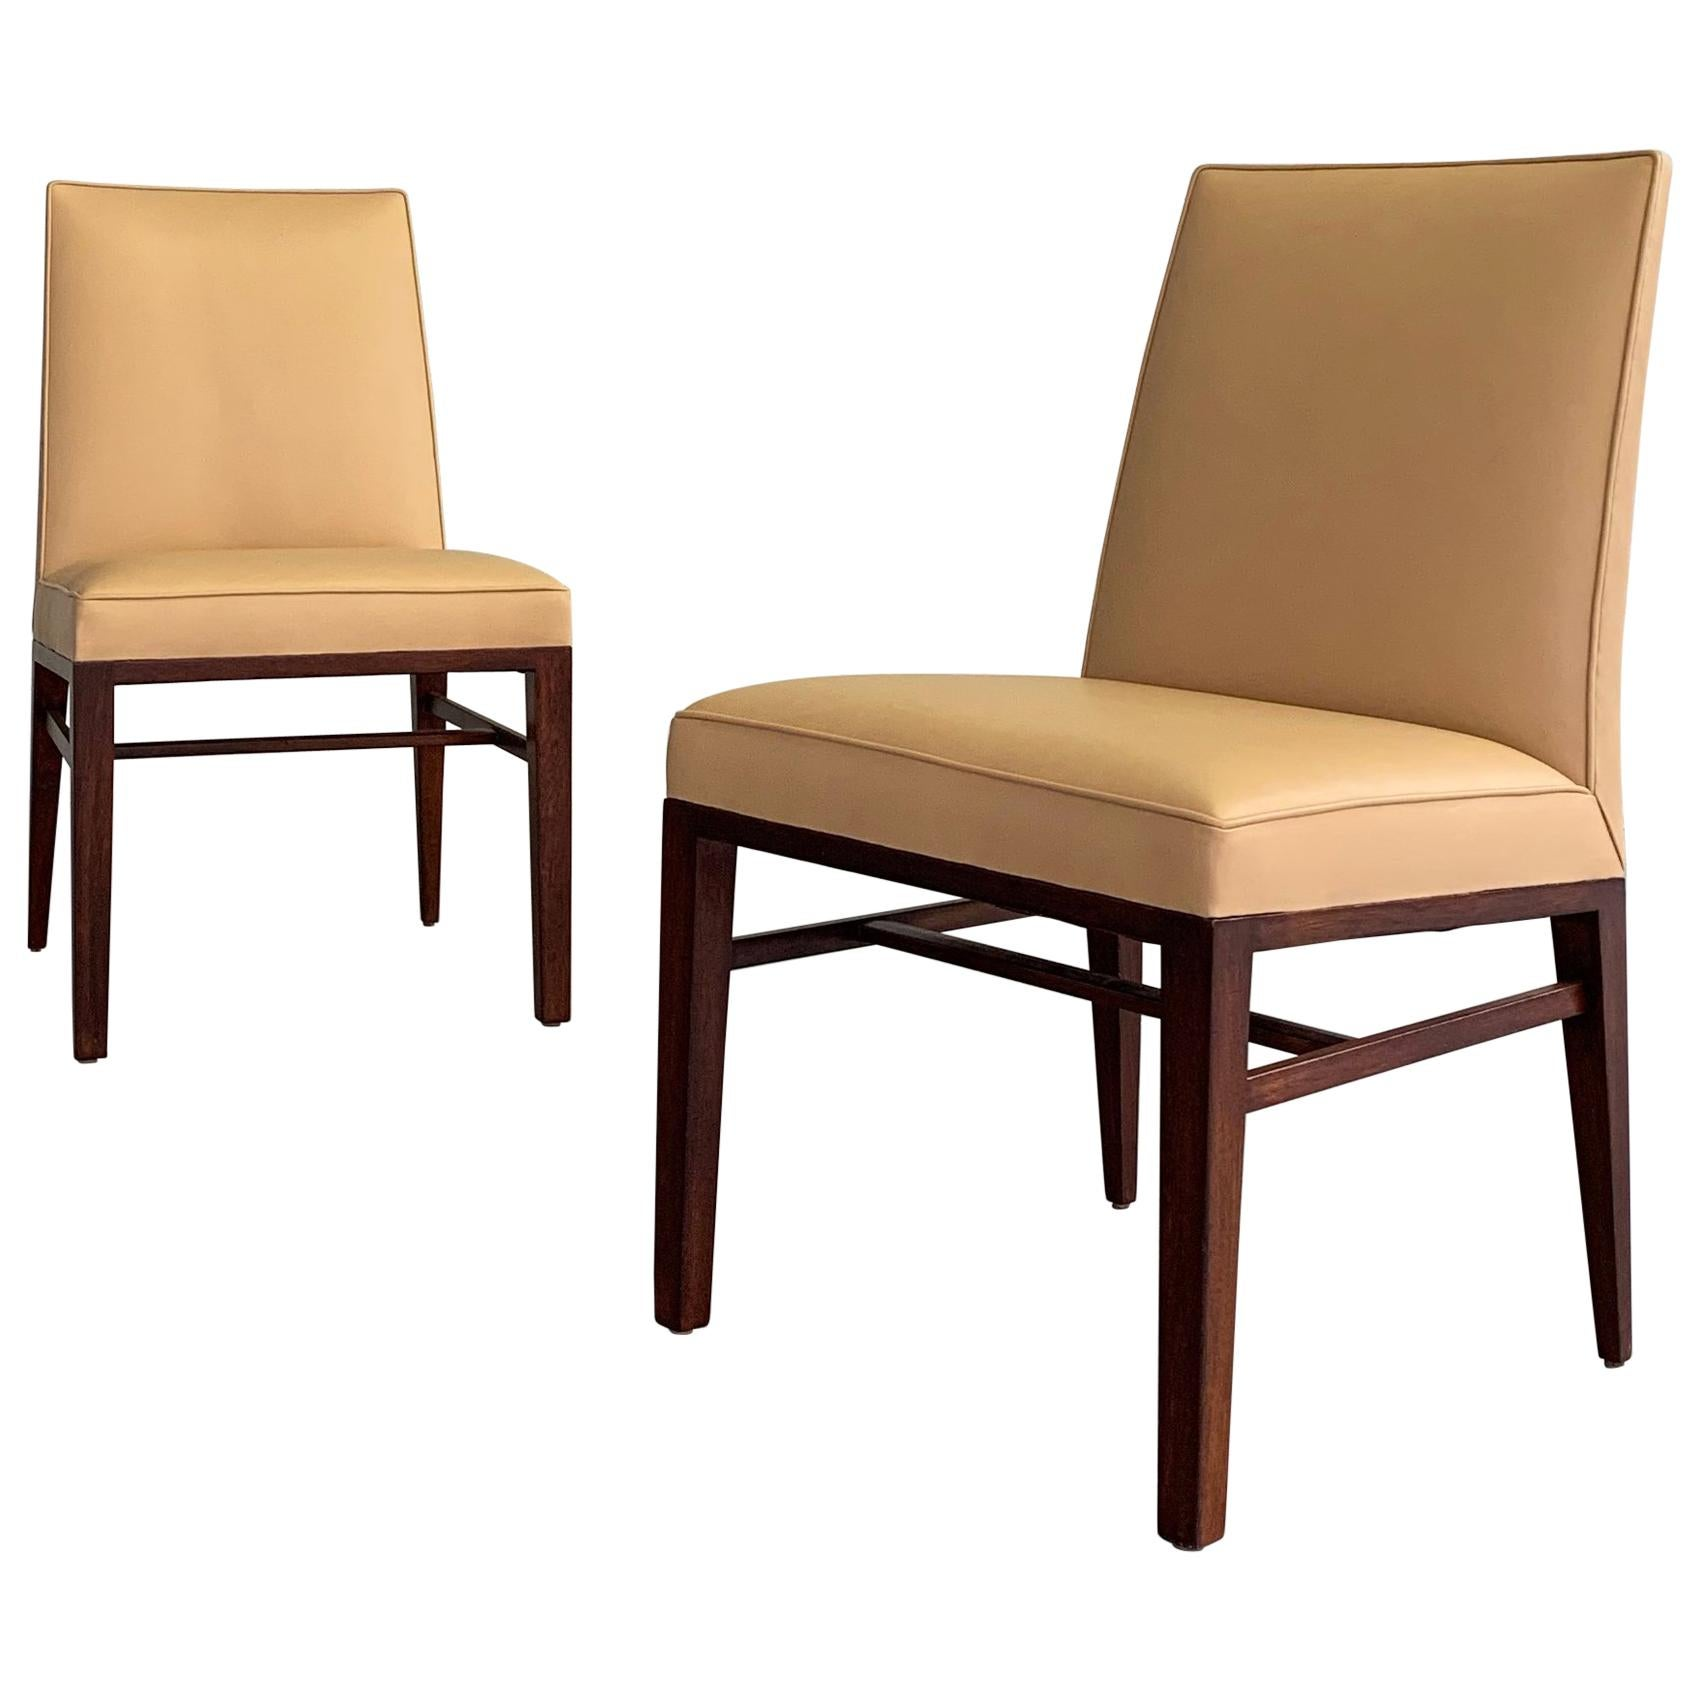 Pair of Edward Wormley for Dunbar Leather Slipper Side Chairs